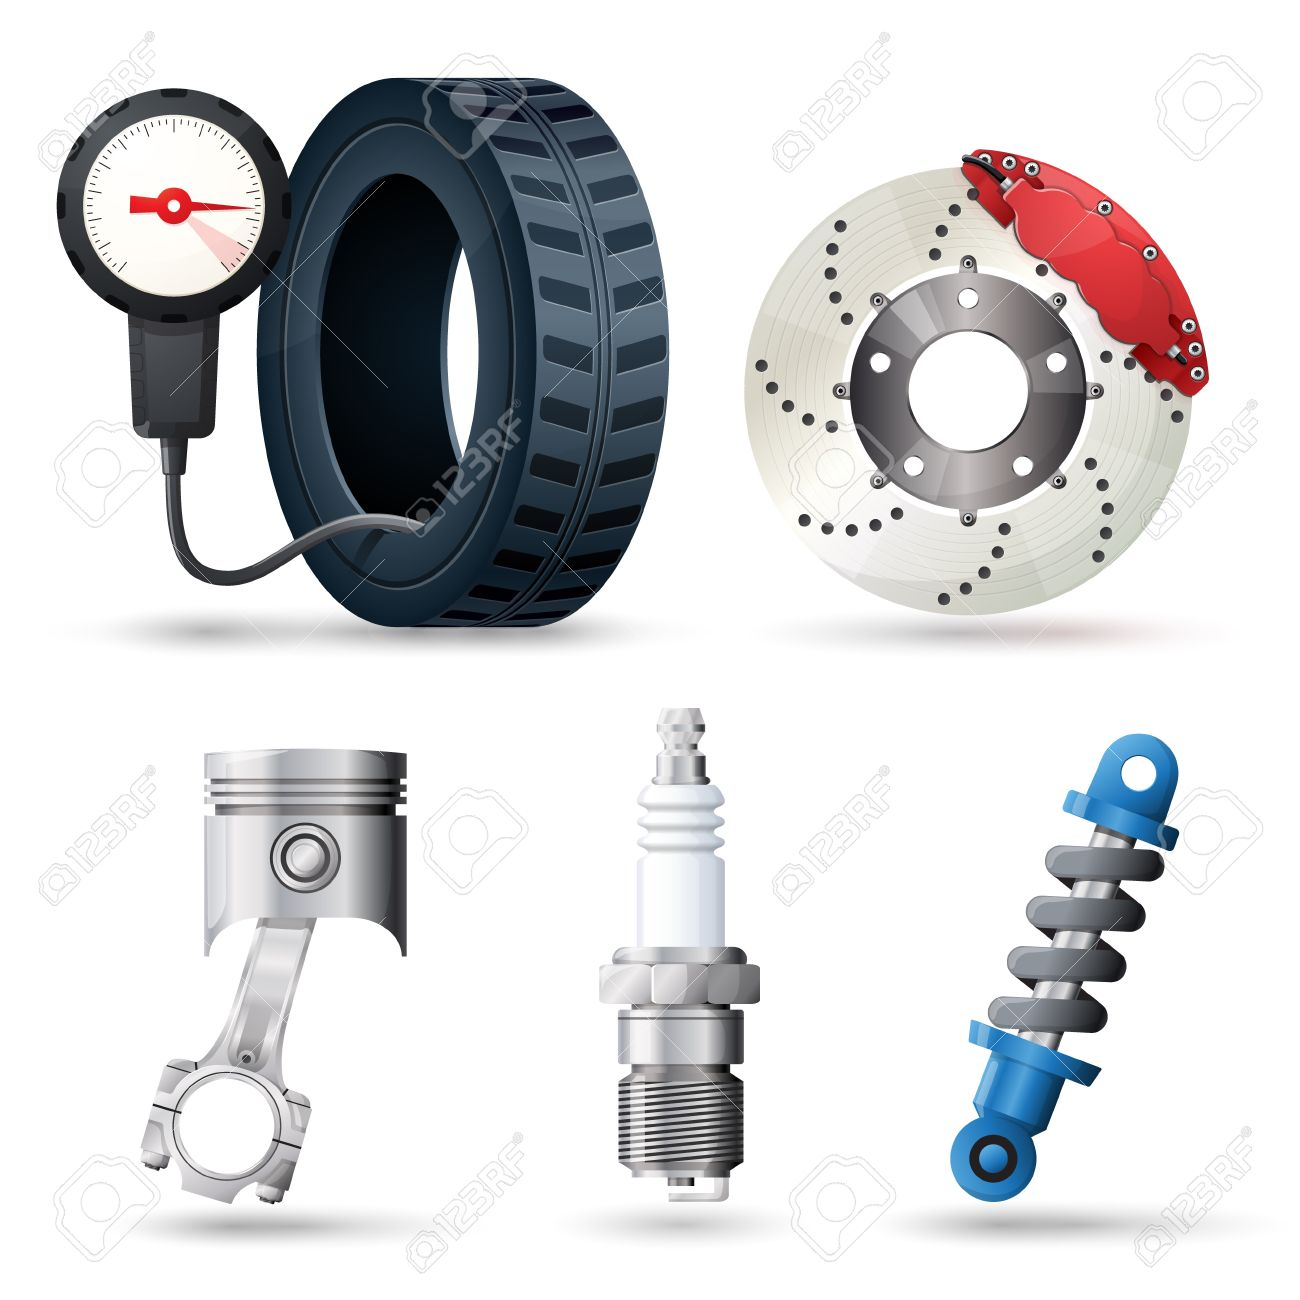 Car spare parts, mechanic and service tools - 17782595